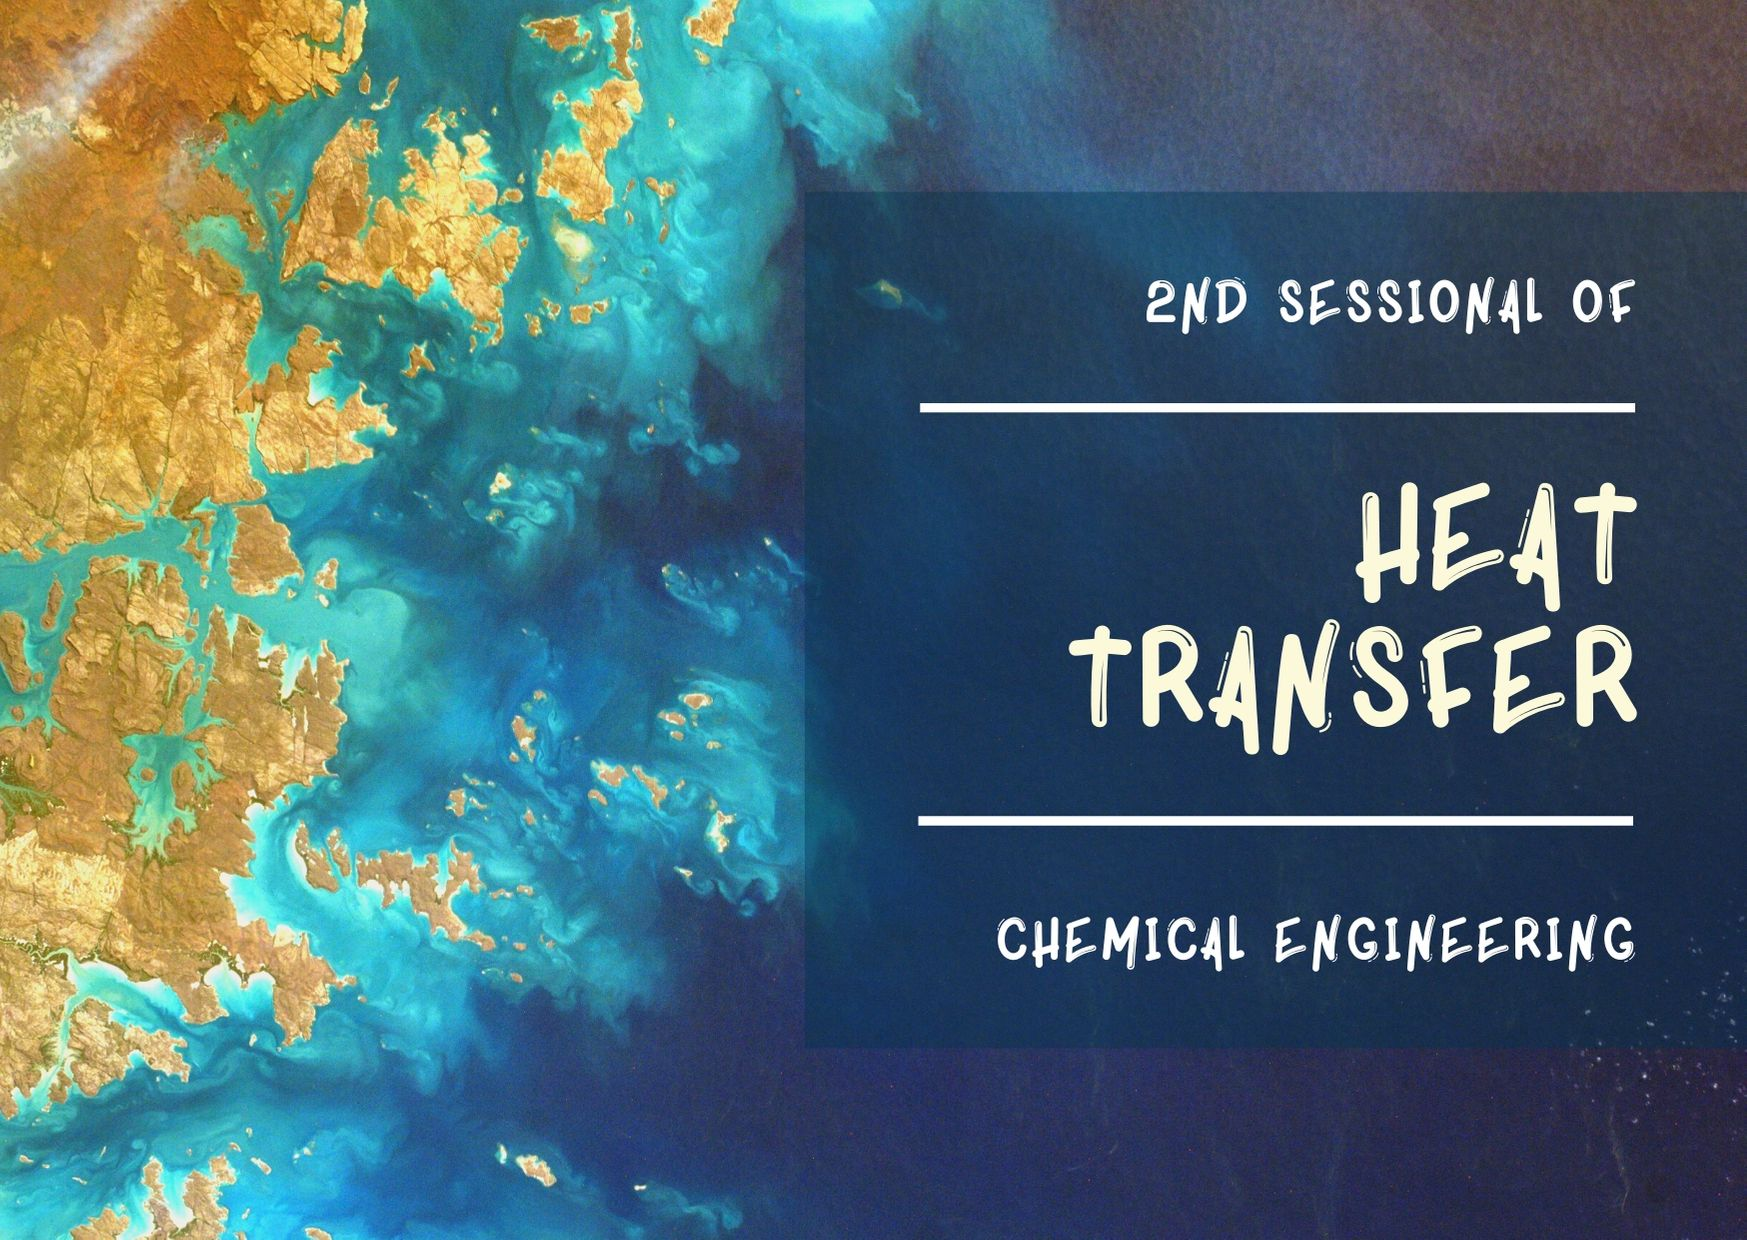 2nd Sessional of Heat Transfer (Chemical Engineering, GNDIT-2019)